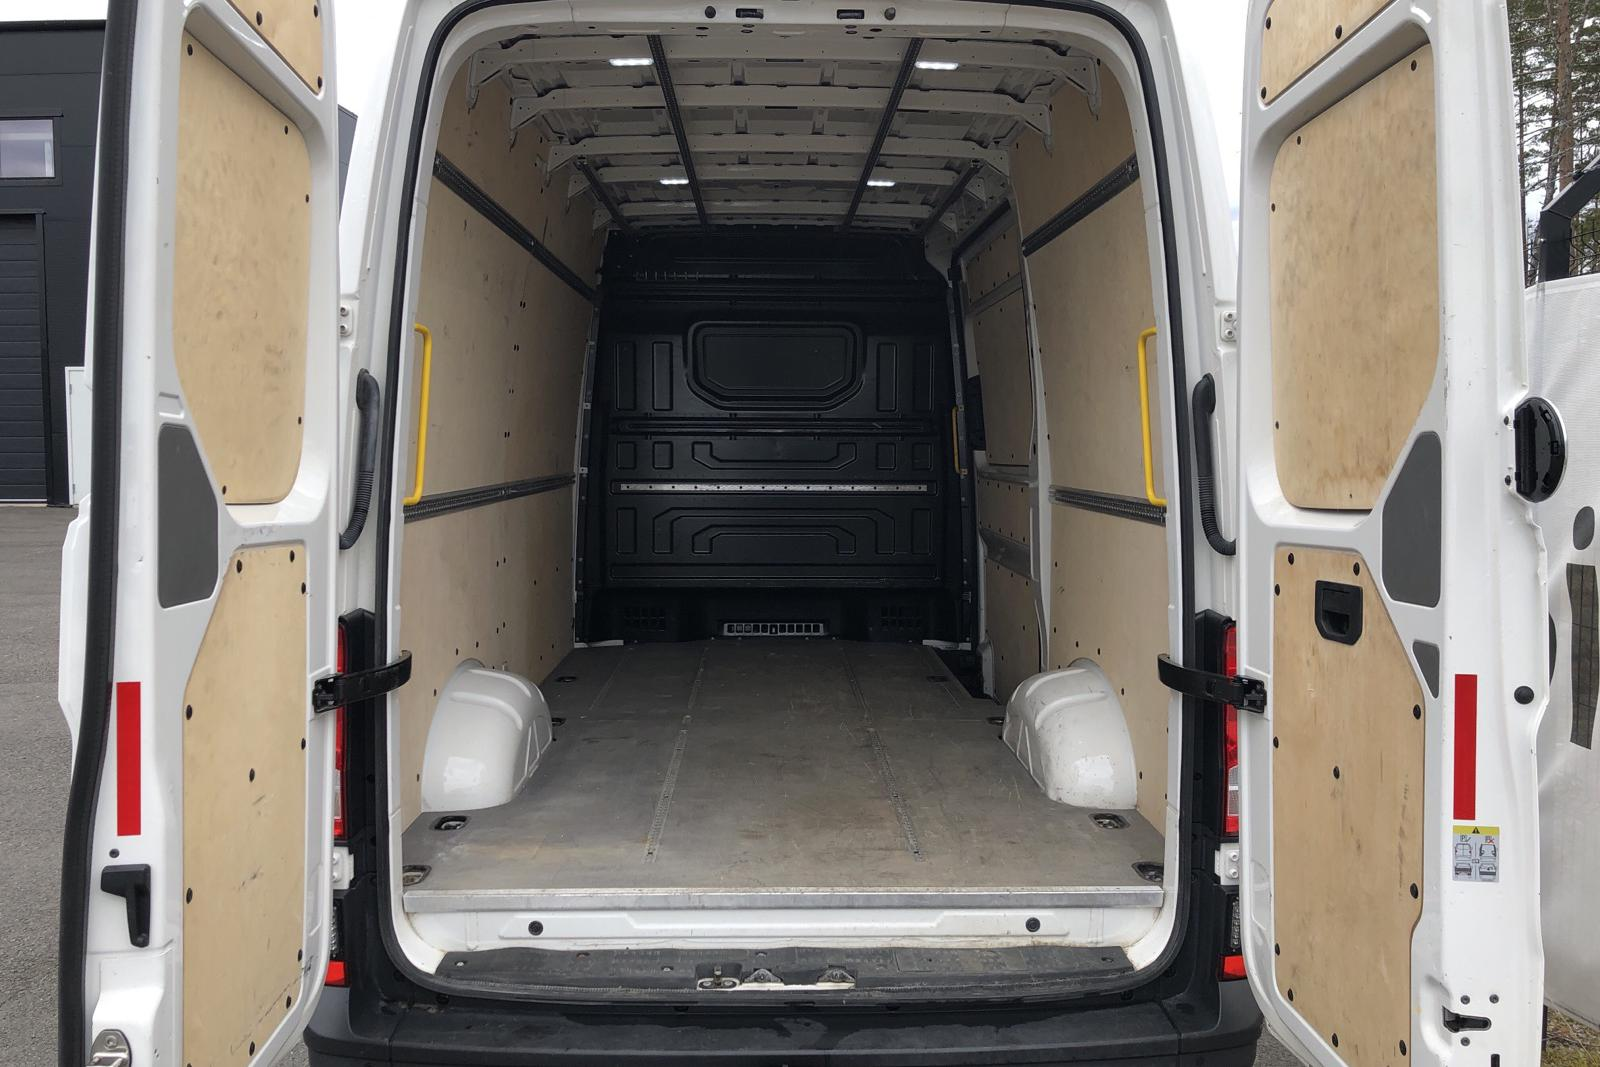 VW Crafter 35 2.0 TDI Skåp 4Motion (177hk) - 192 880 km - Manual - white - 2018